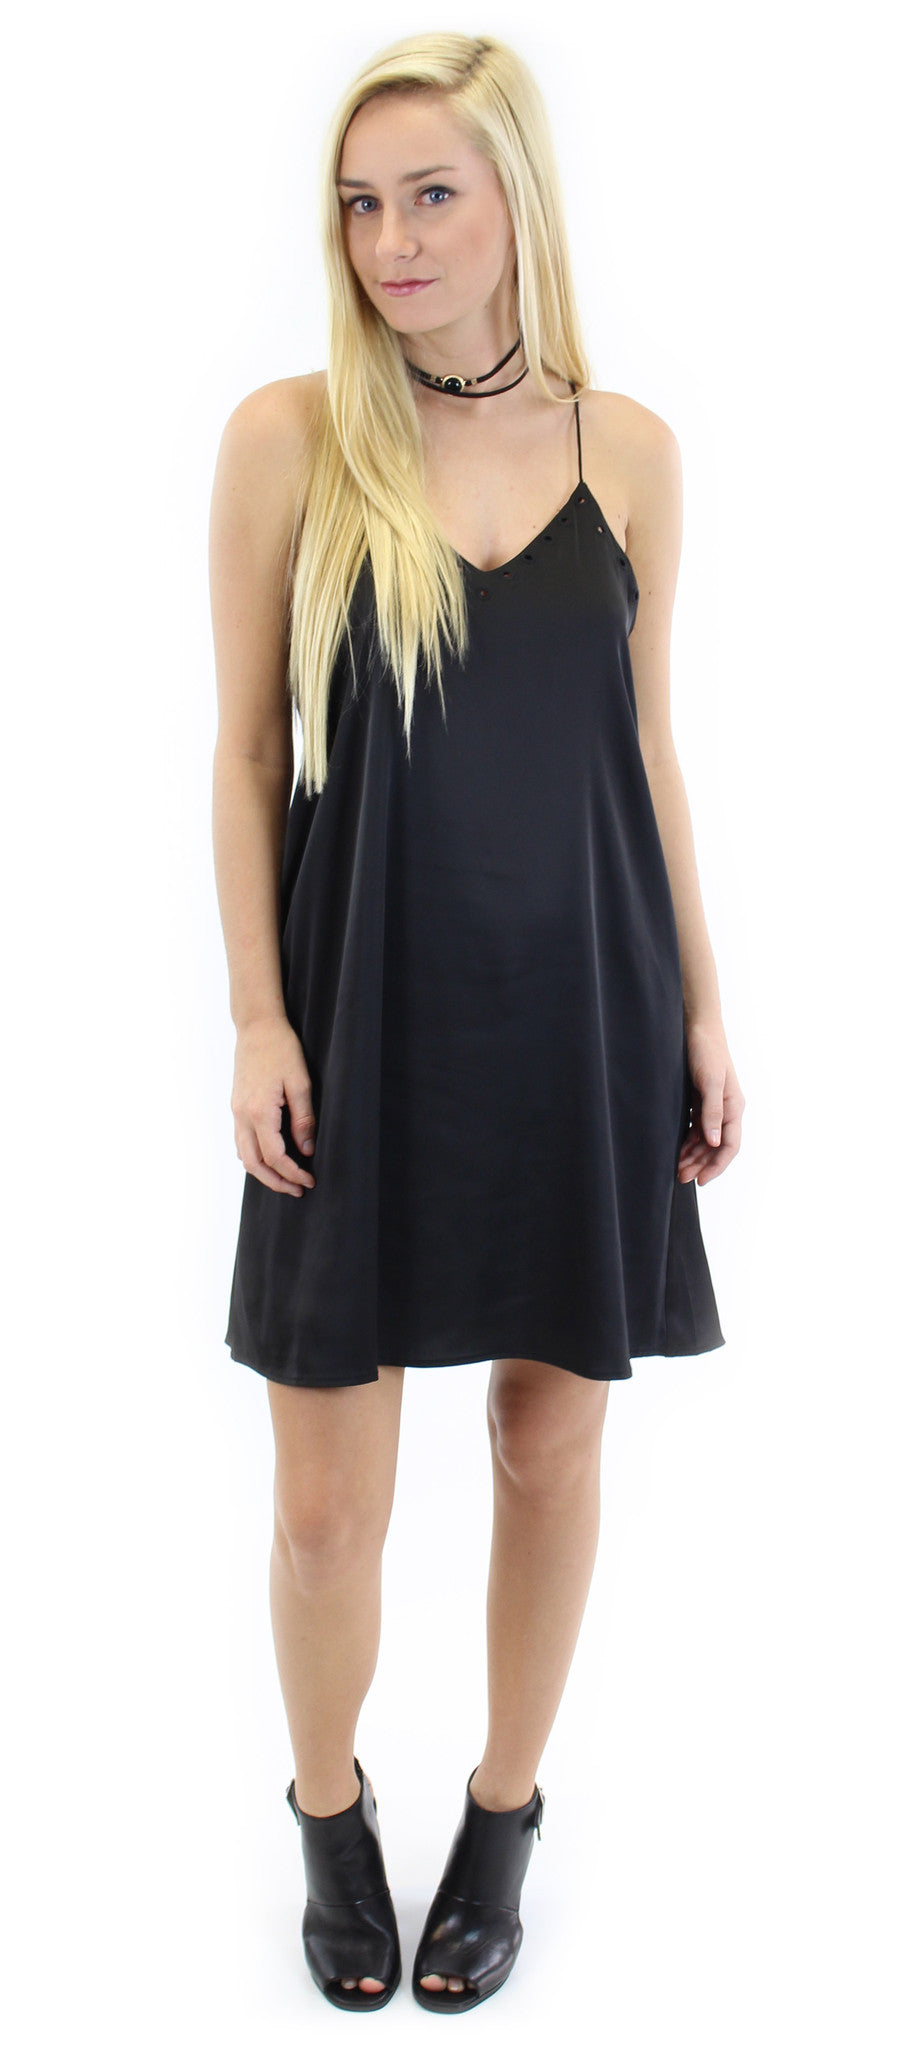 silky dress with cut-out detail - klōthe - 1